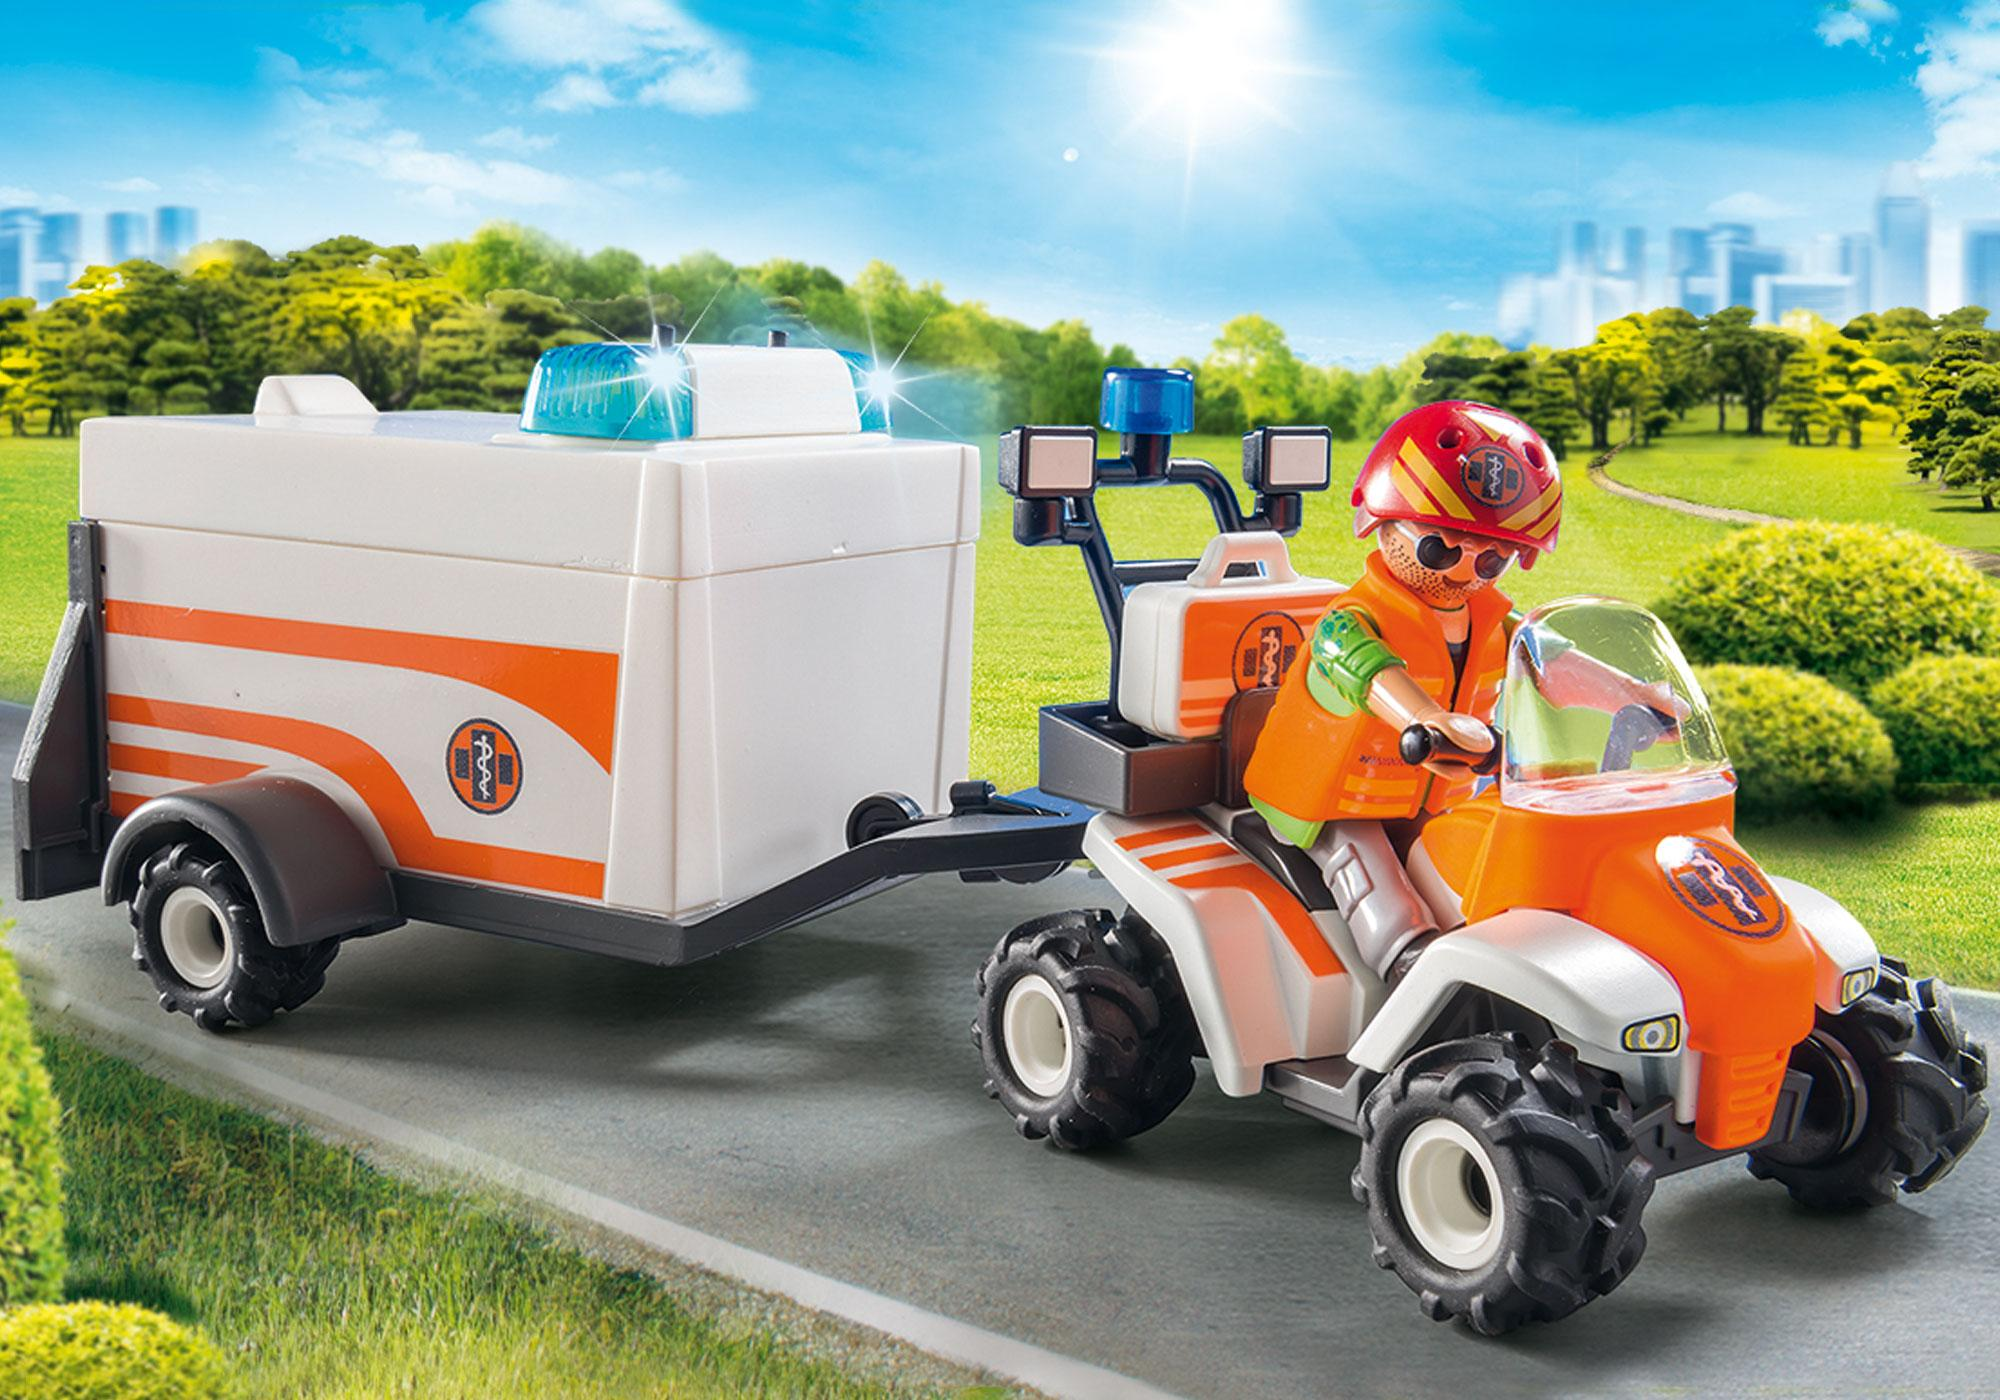 http://media.playmobil.com/i/playmobil/70053_product_extra2/Eerste hulp quad met trailer